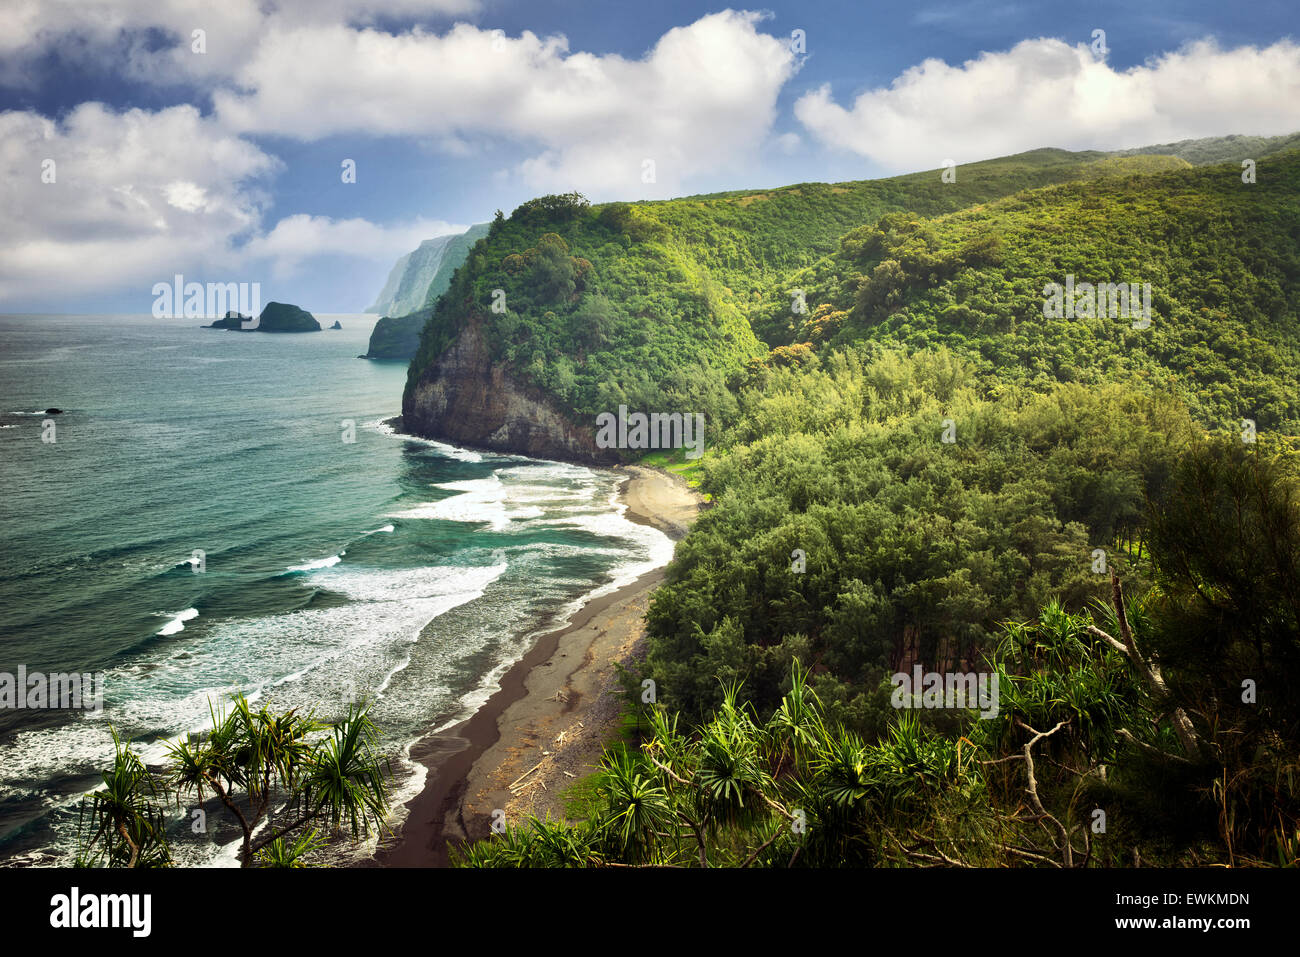 La Vallée de Pololu au littoral. New York, la grande île. Photo Stock